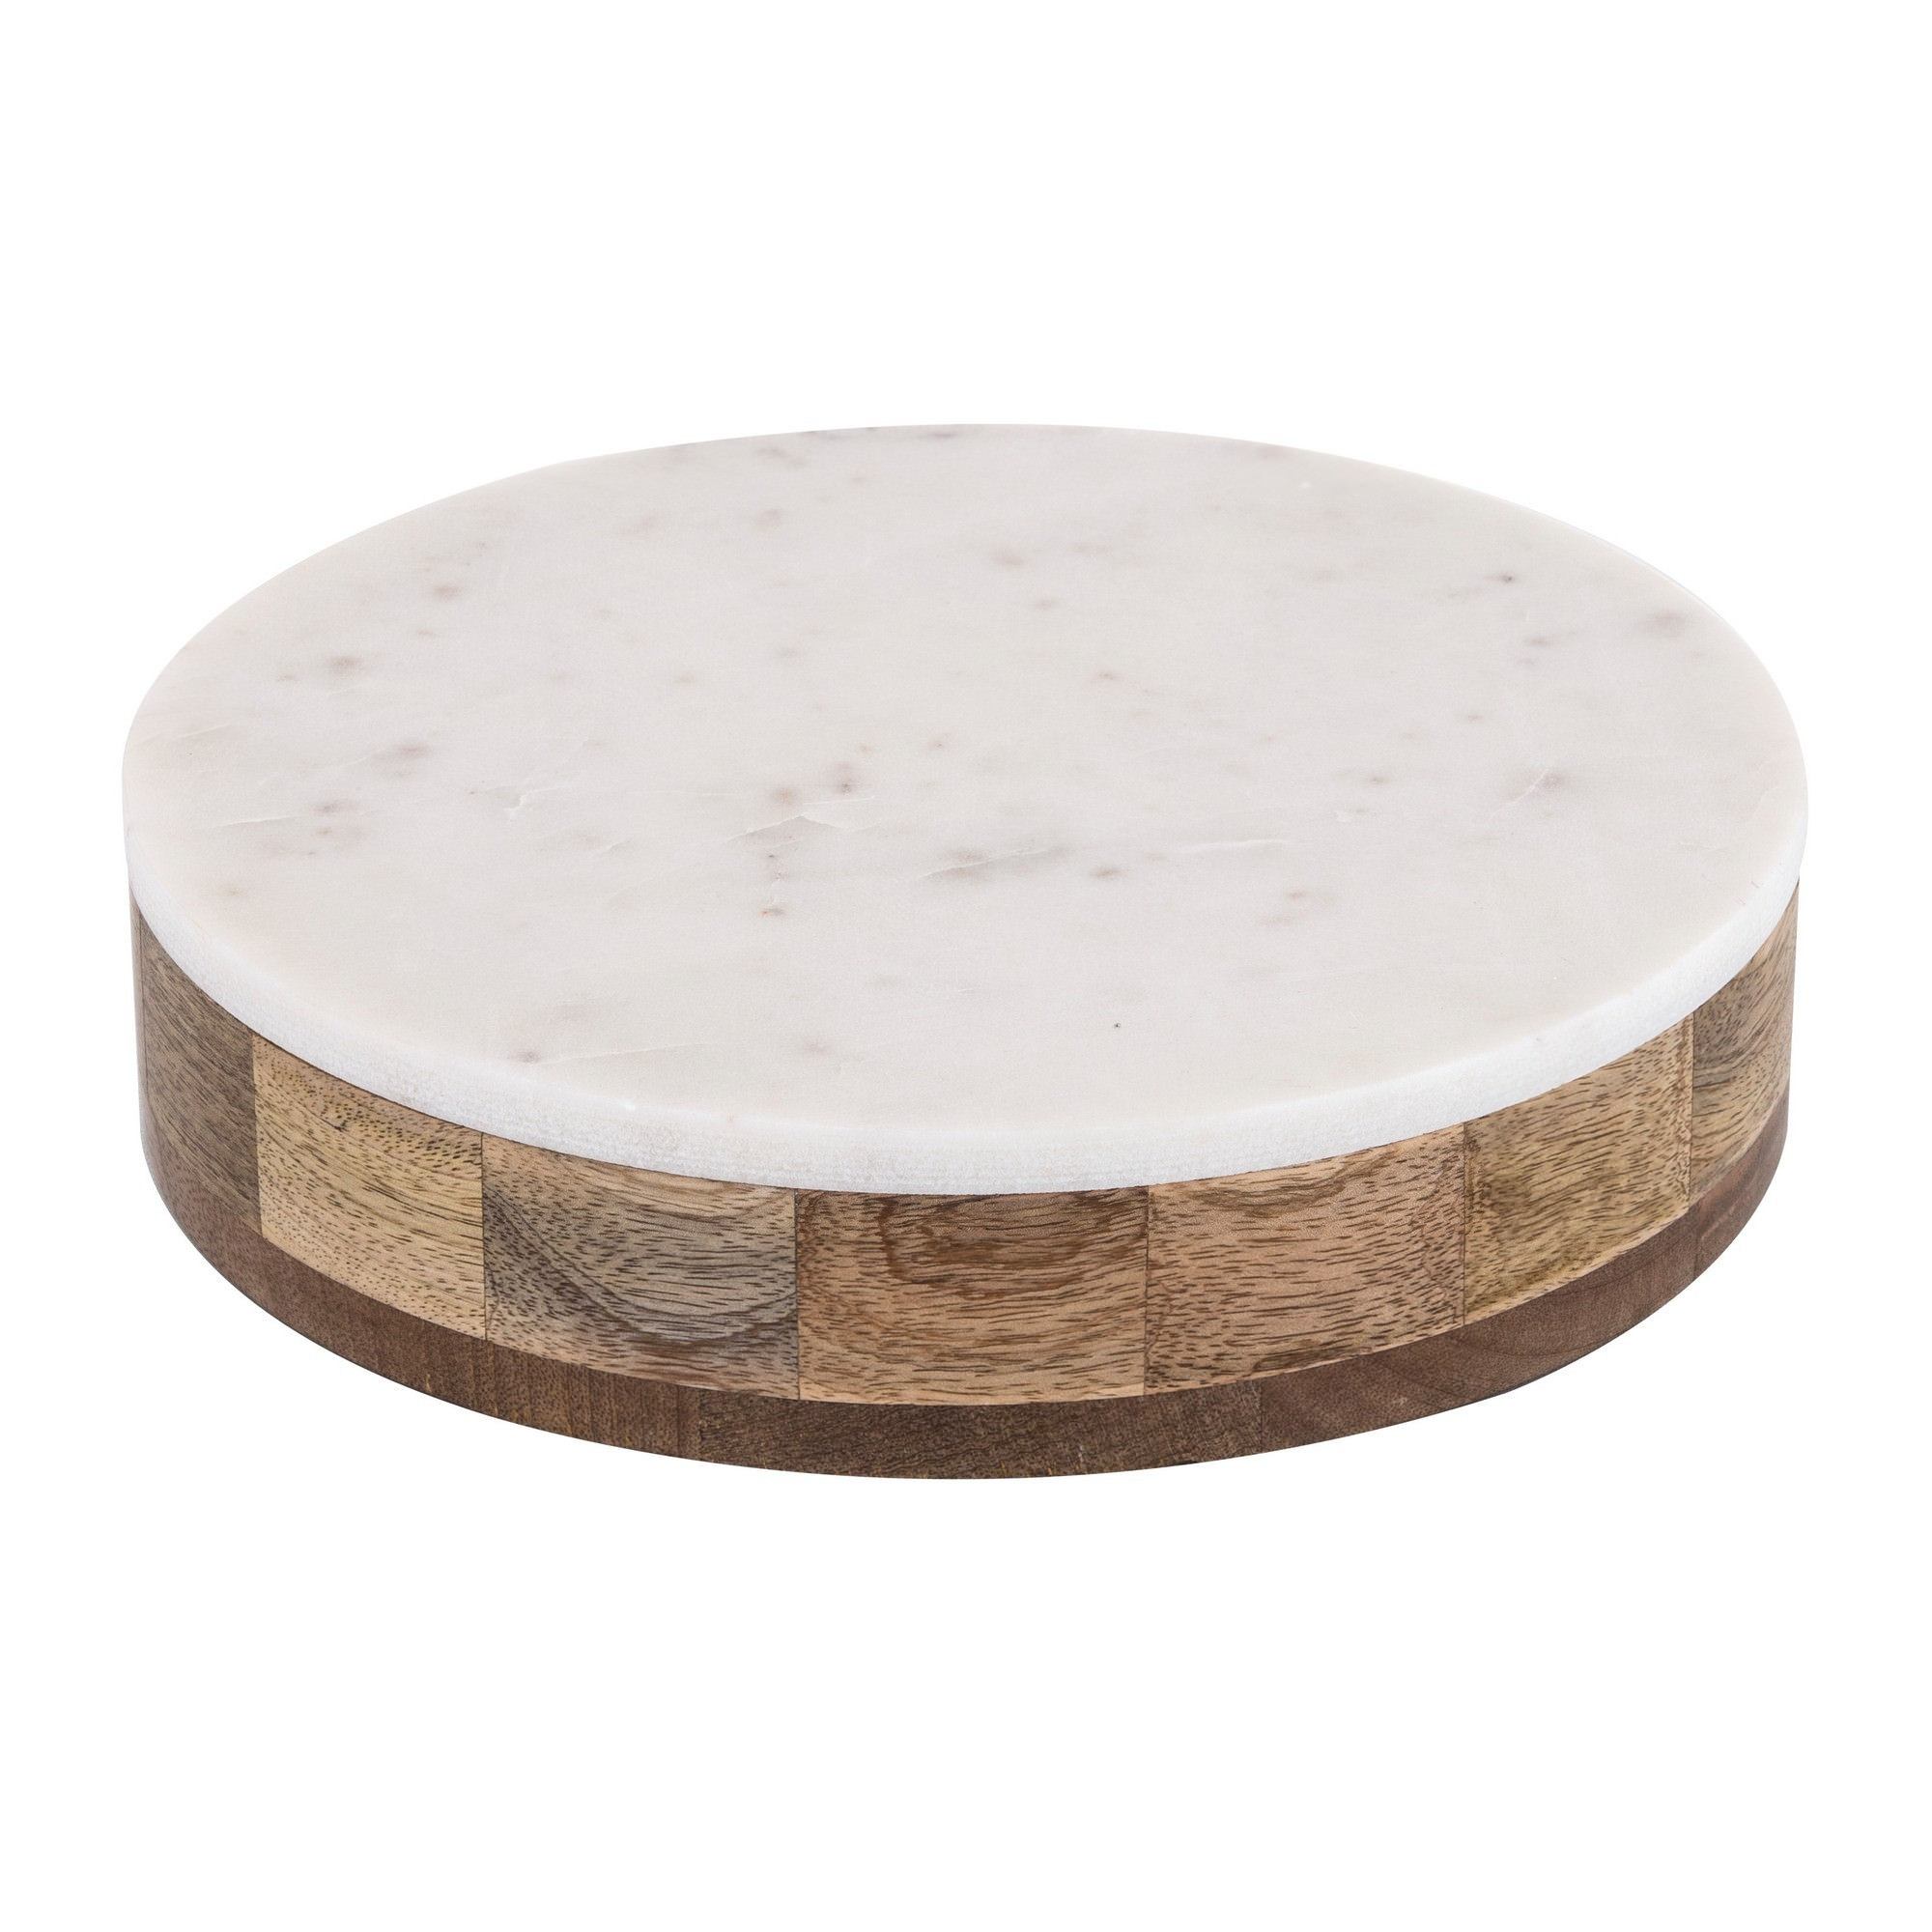 Eliot Mango Wood Bowl with Marble Serving Lid